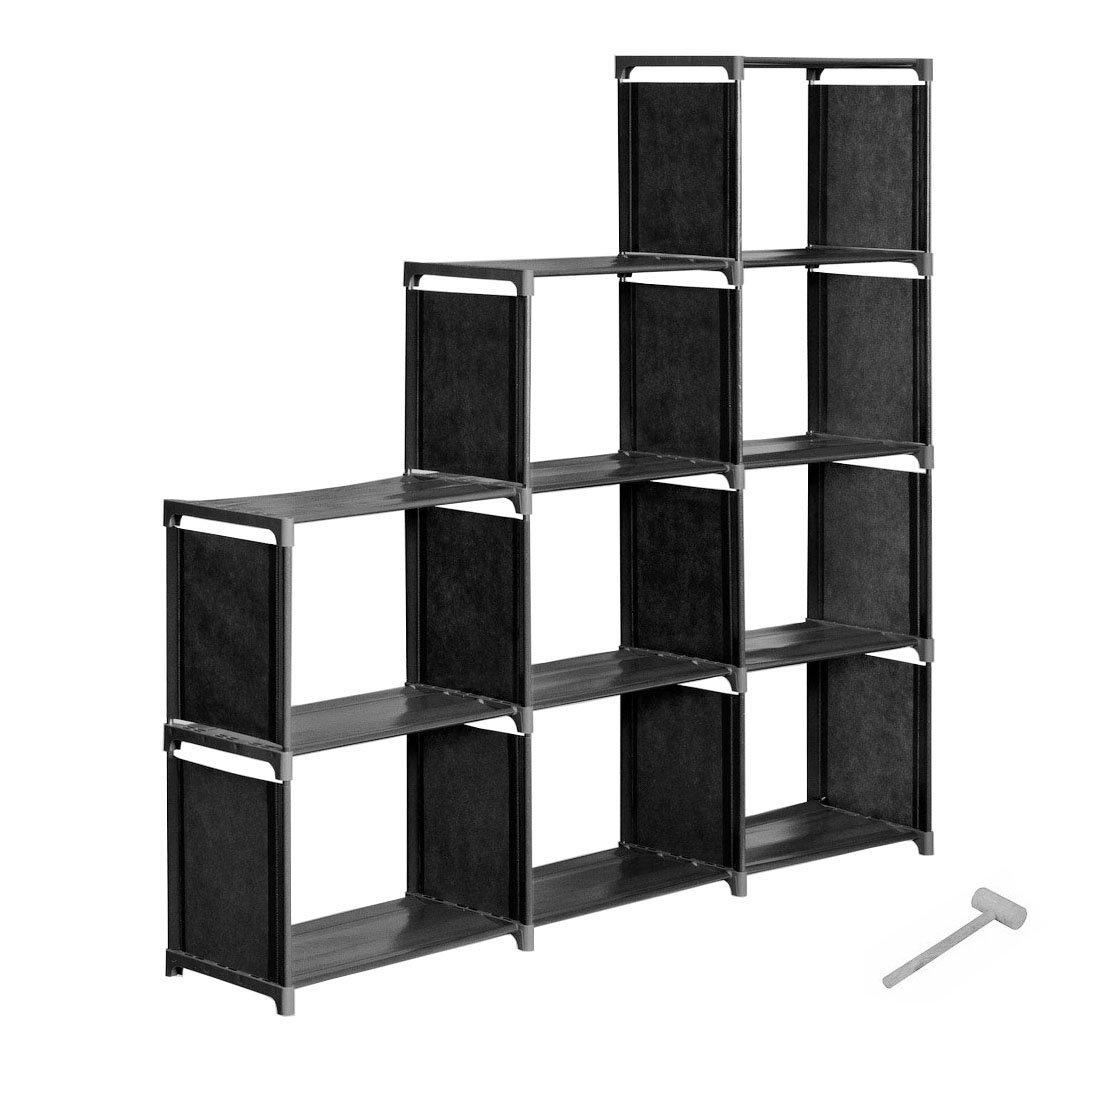 INLYF 4-Tier Storage Cube Closet Organization System, 9-Cube DIY Bookshelf Cabinet Without Doors for Clothes, Toys, Books and Shoes (Black)